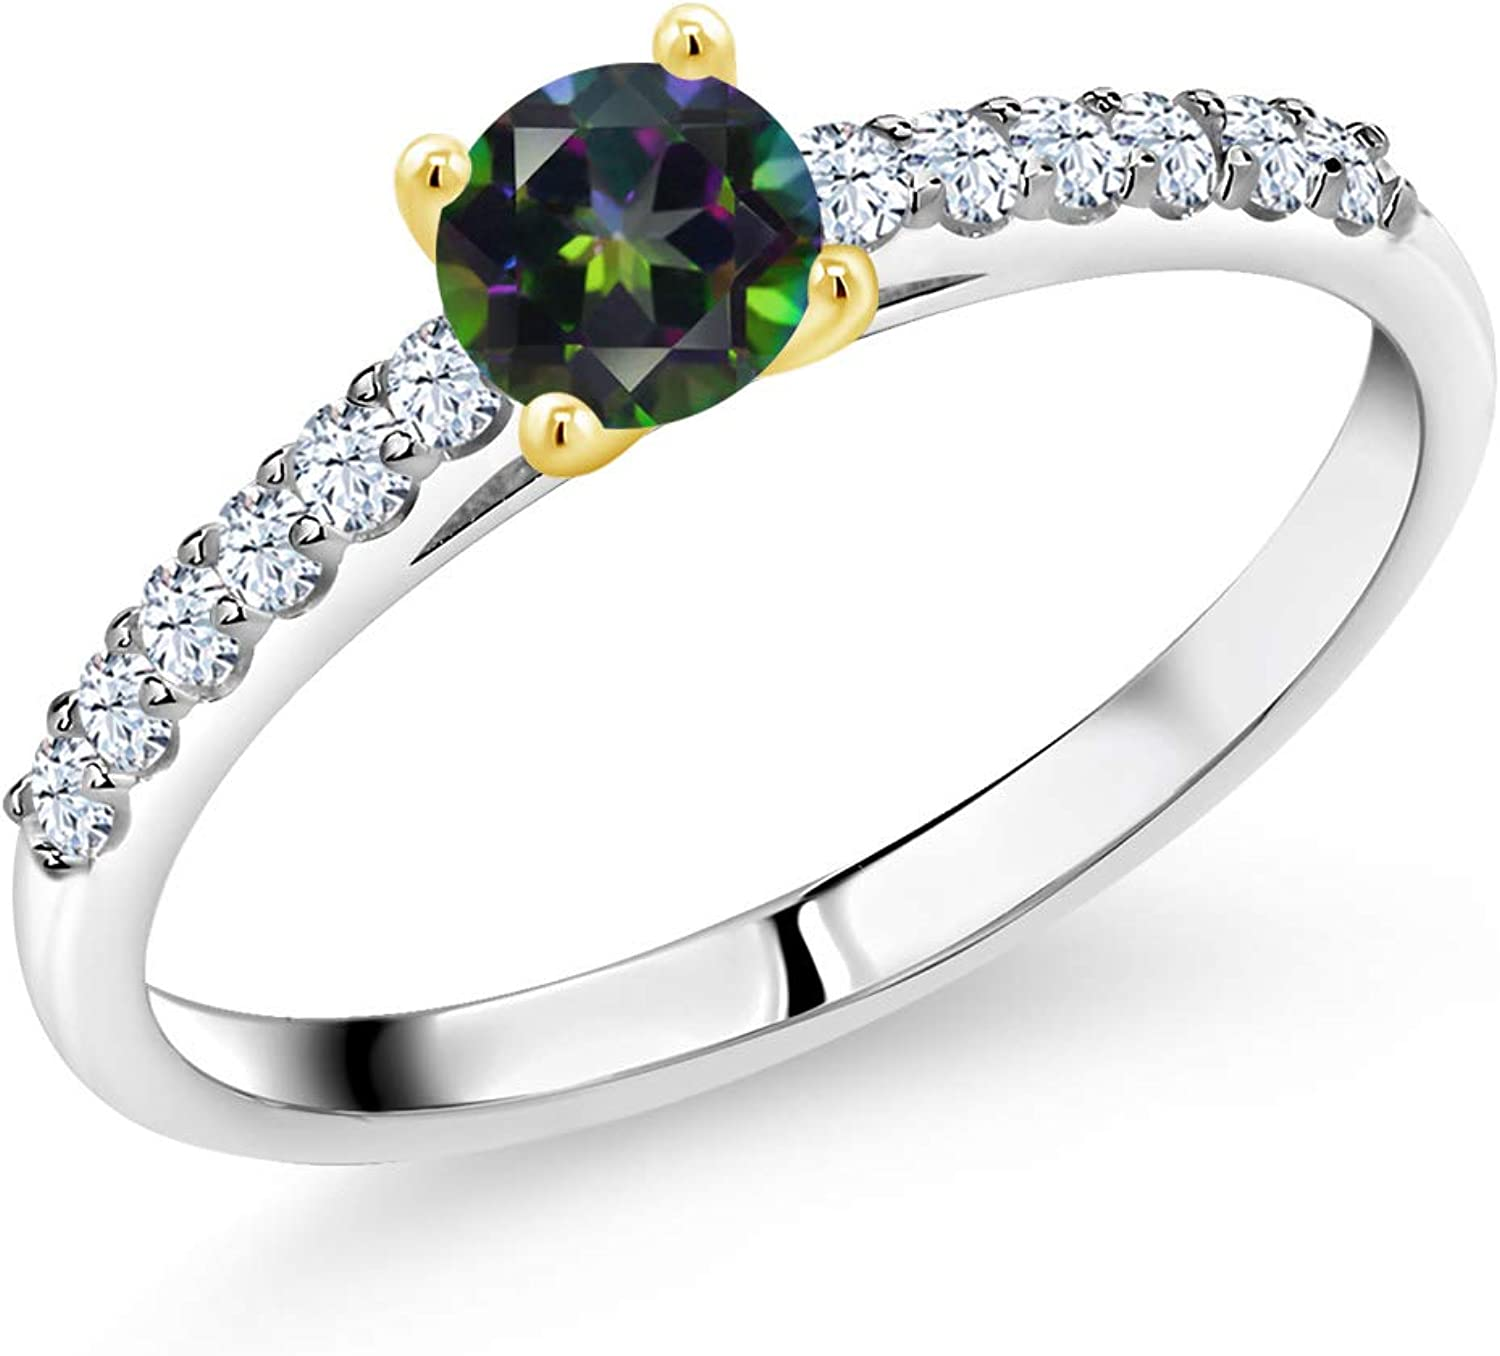 Gem Stone King 925 Sterling Silver 10 Ring with Max 75% OFF trust Engagement Women